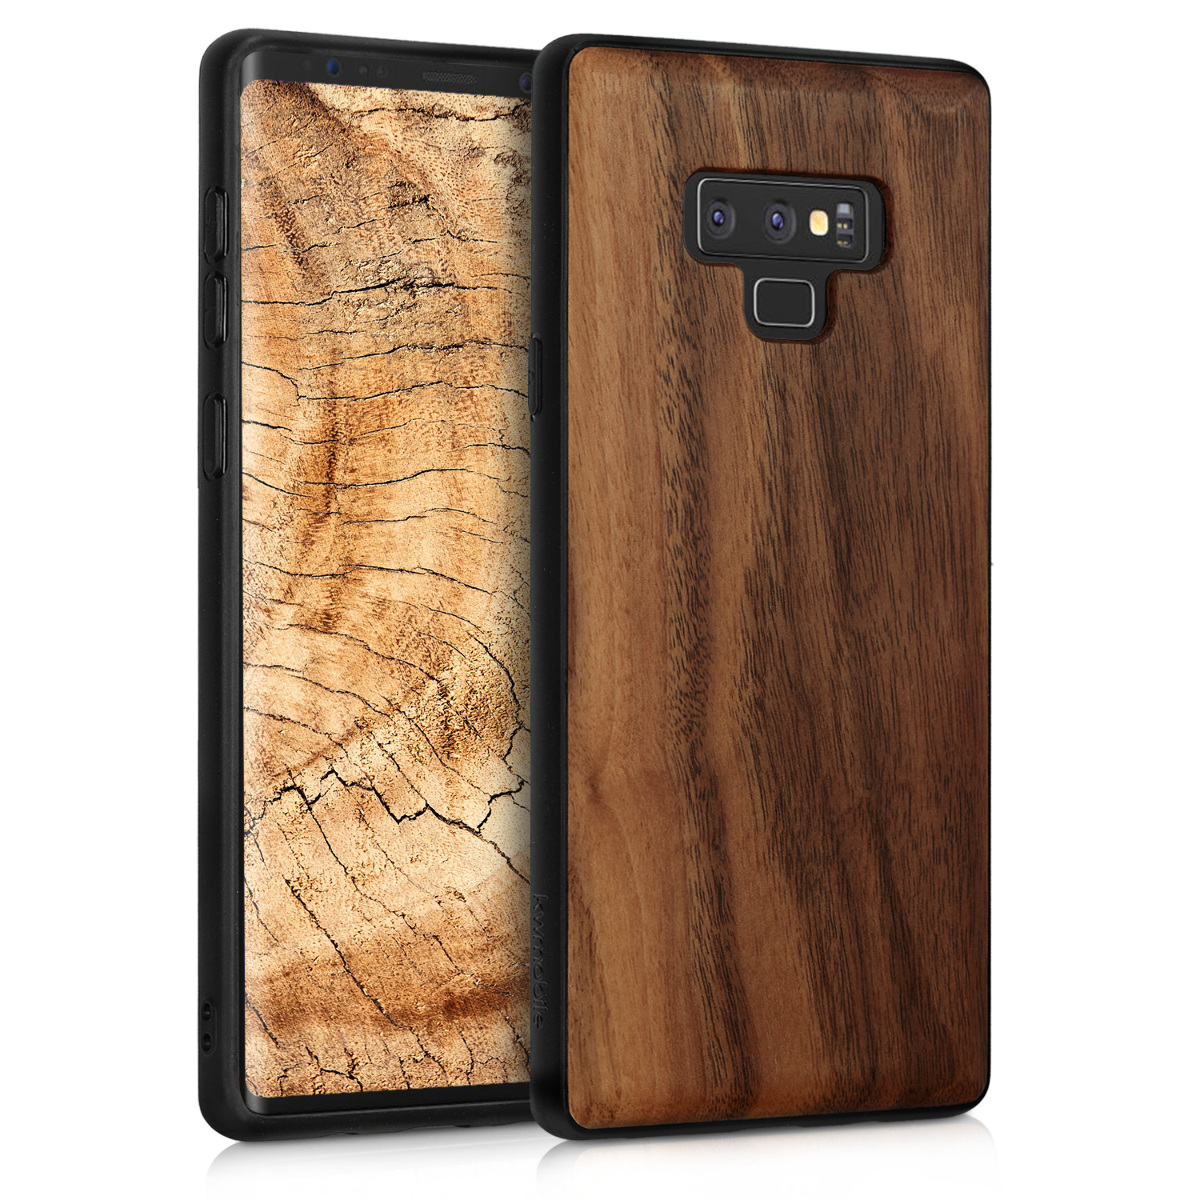 KW Ξύλινη Θήκη Samsung Galaxy Note 9 - Dark Brown (46624.18)